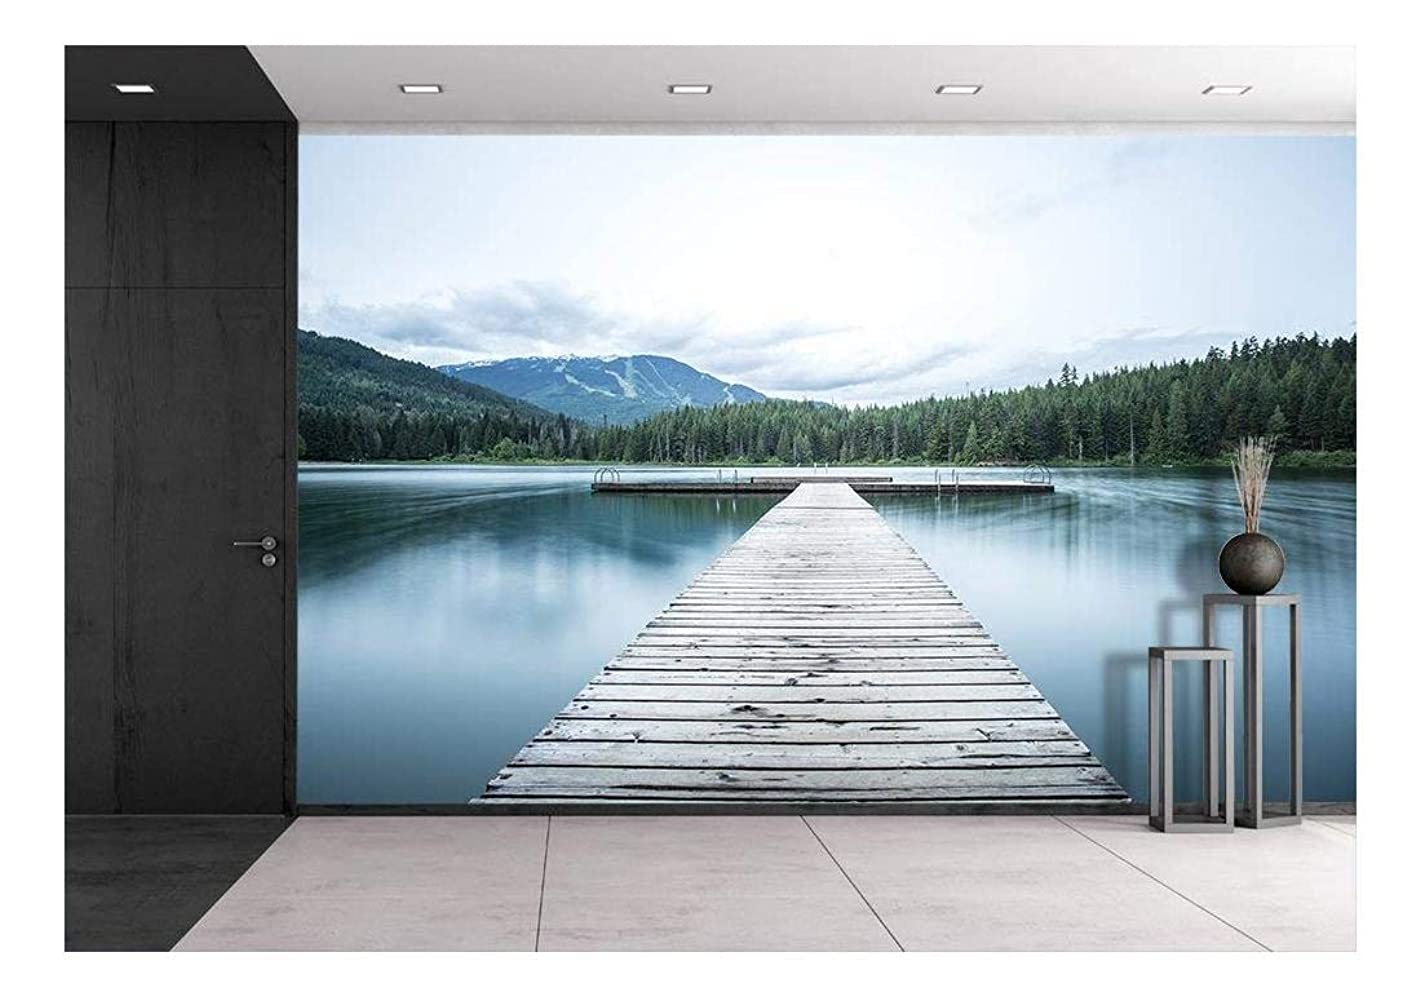 wall26 - Wooden Path to Lake - Removable Wall Mural | Self-Adhesive Large Wallpaper - 66x96 inches